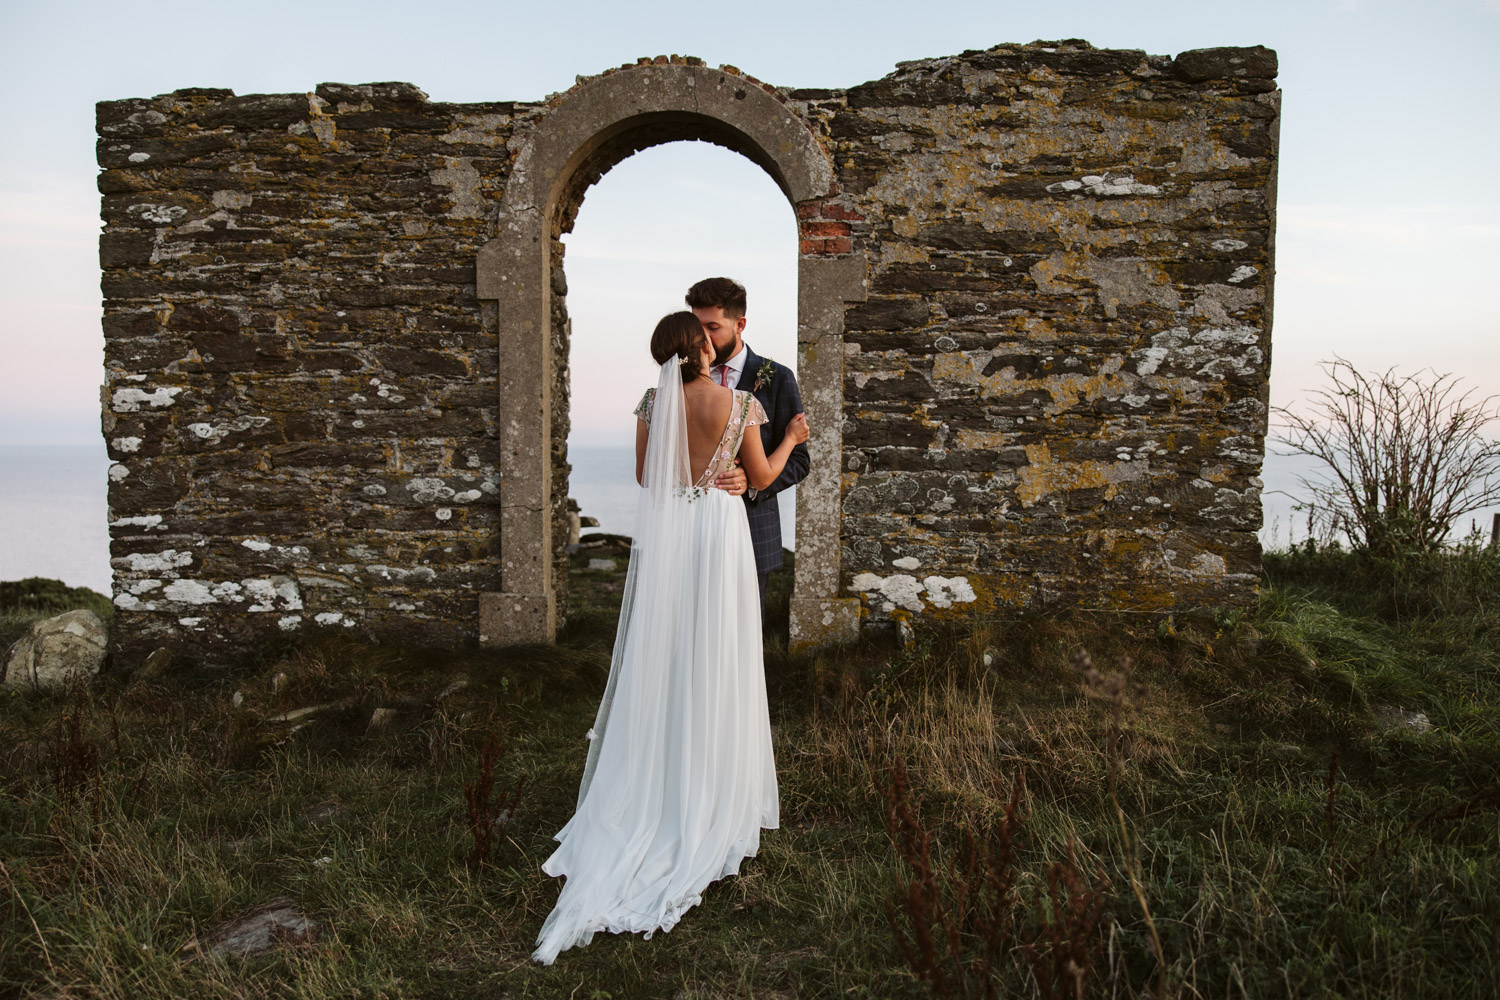 cool composition of the couple kissing next to ruins